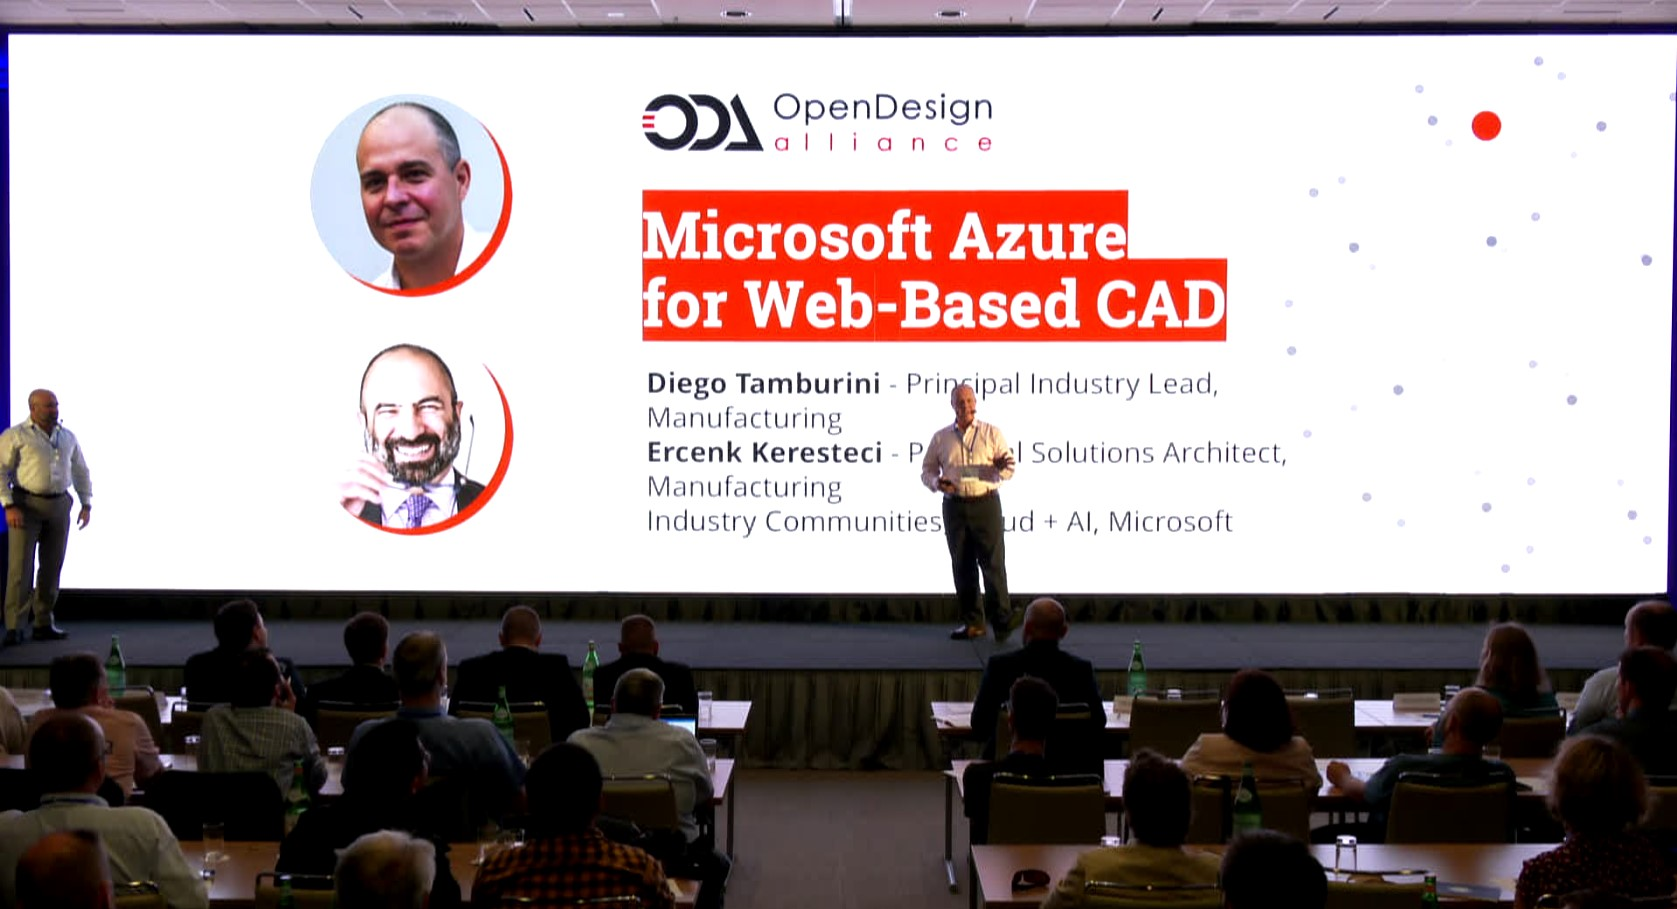 Diego Tamburini and Ercenk Keresteci of Microsoft present  the advantages of Azure for hosting Open Cloud applications